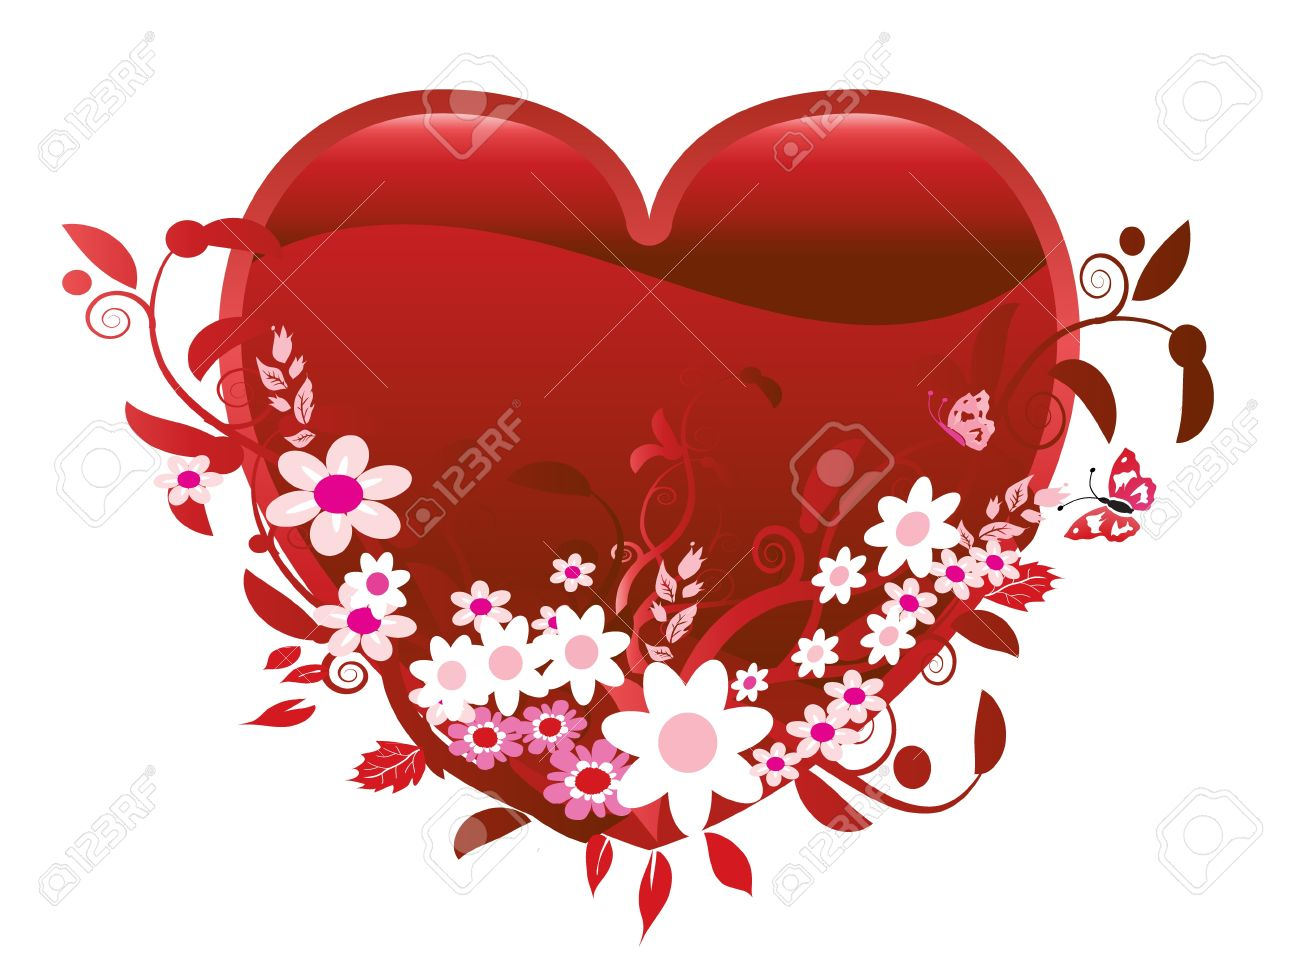 Heart and flowers Valentine Stock Vector - 10599197